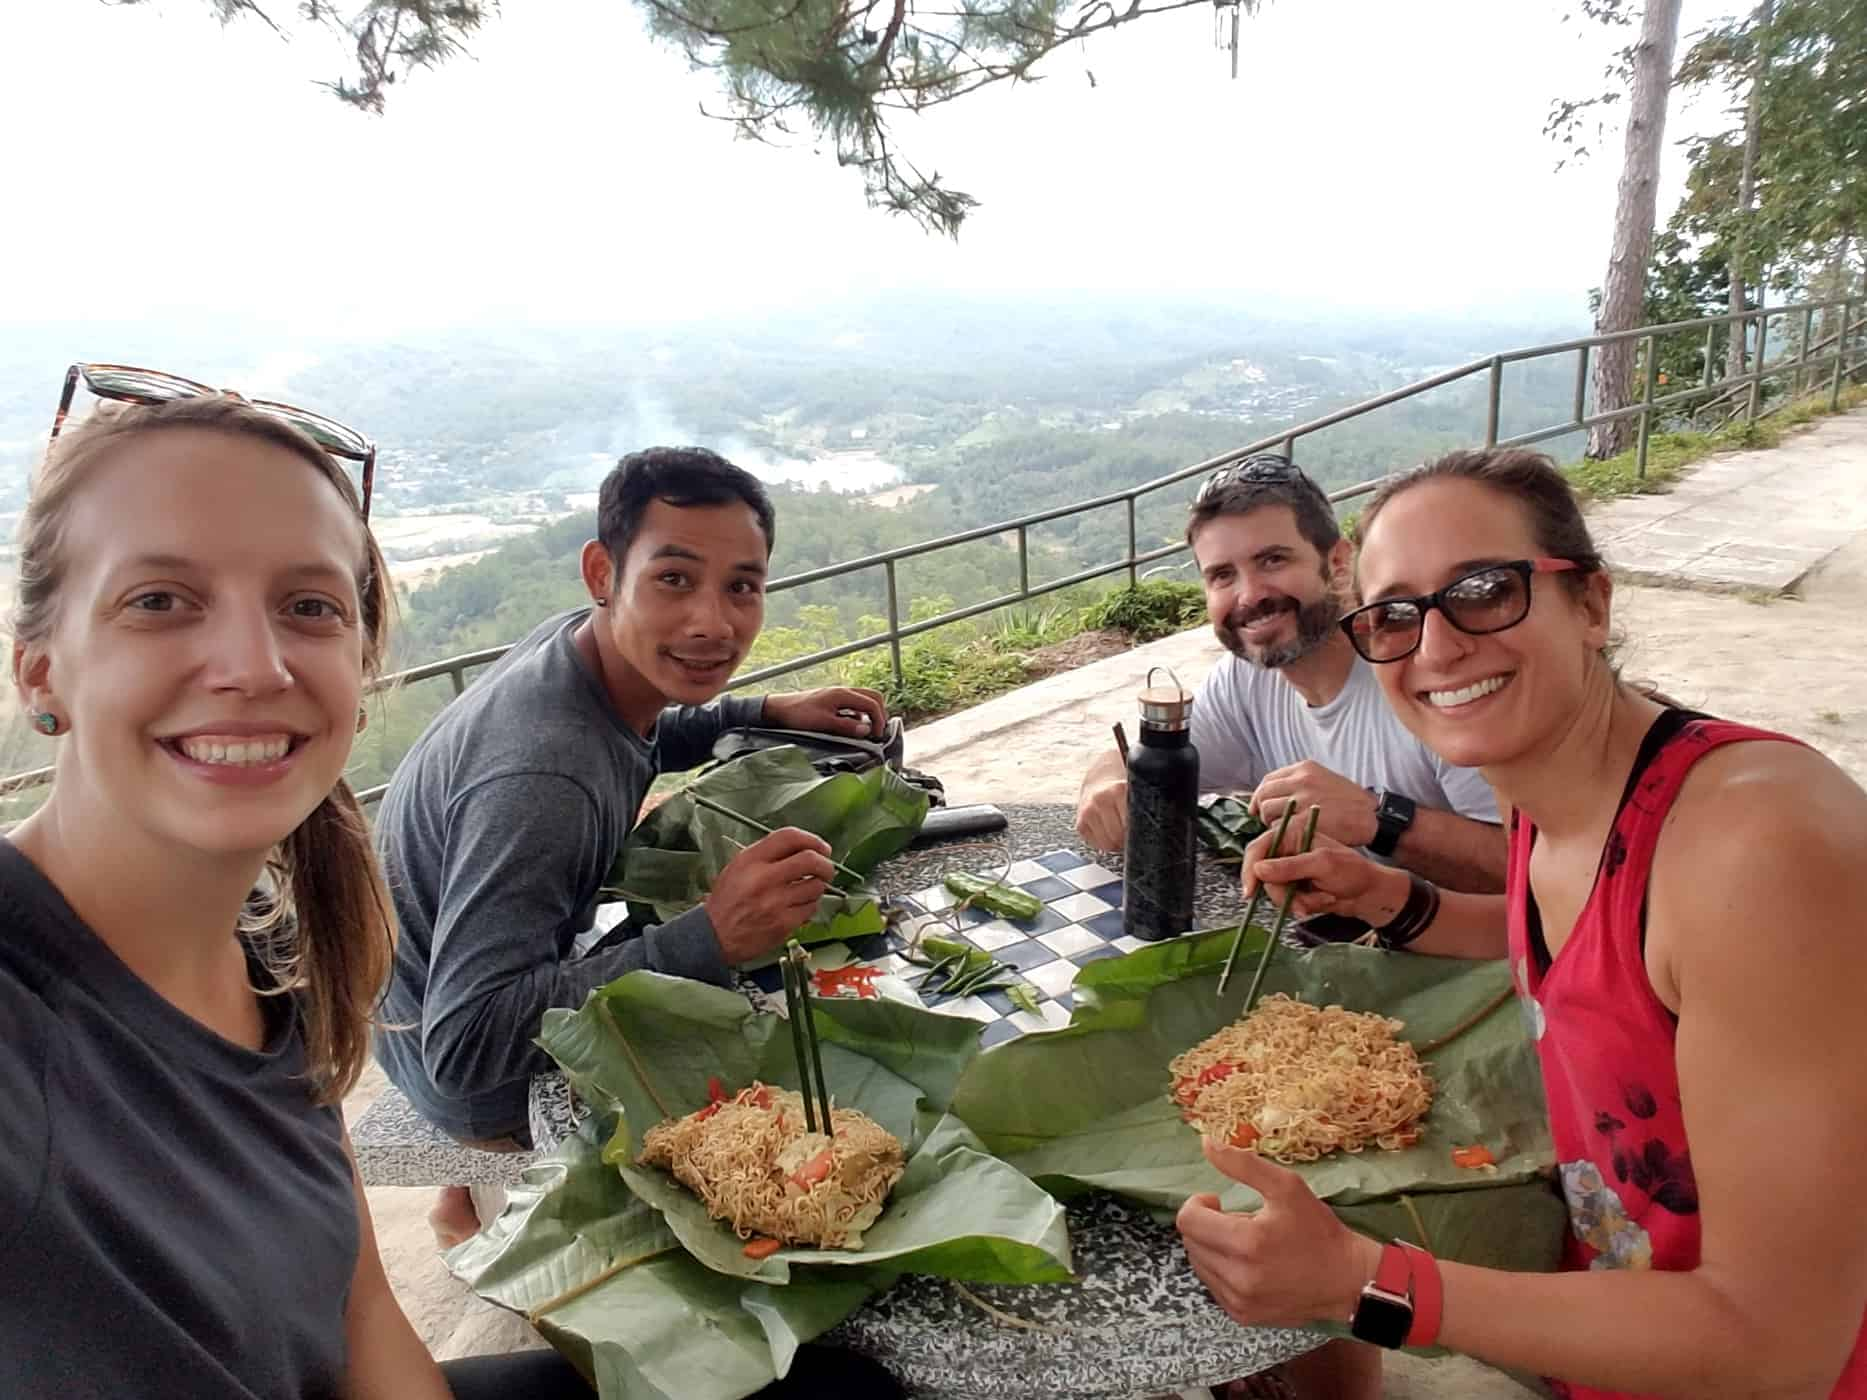 A Group of Trekkers Eat Food Wrapped in Banana Leaves in Doi Inthanon